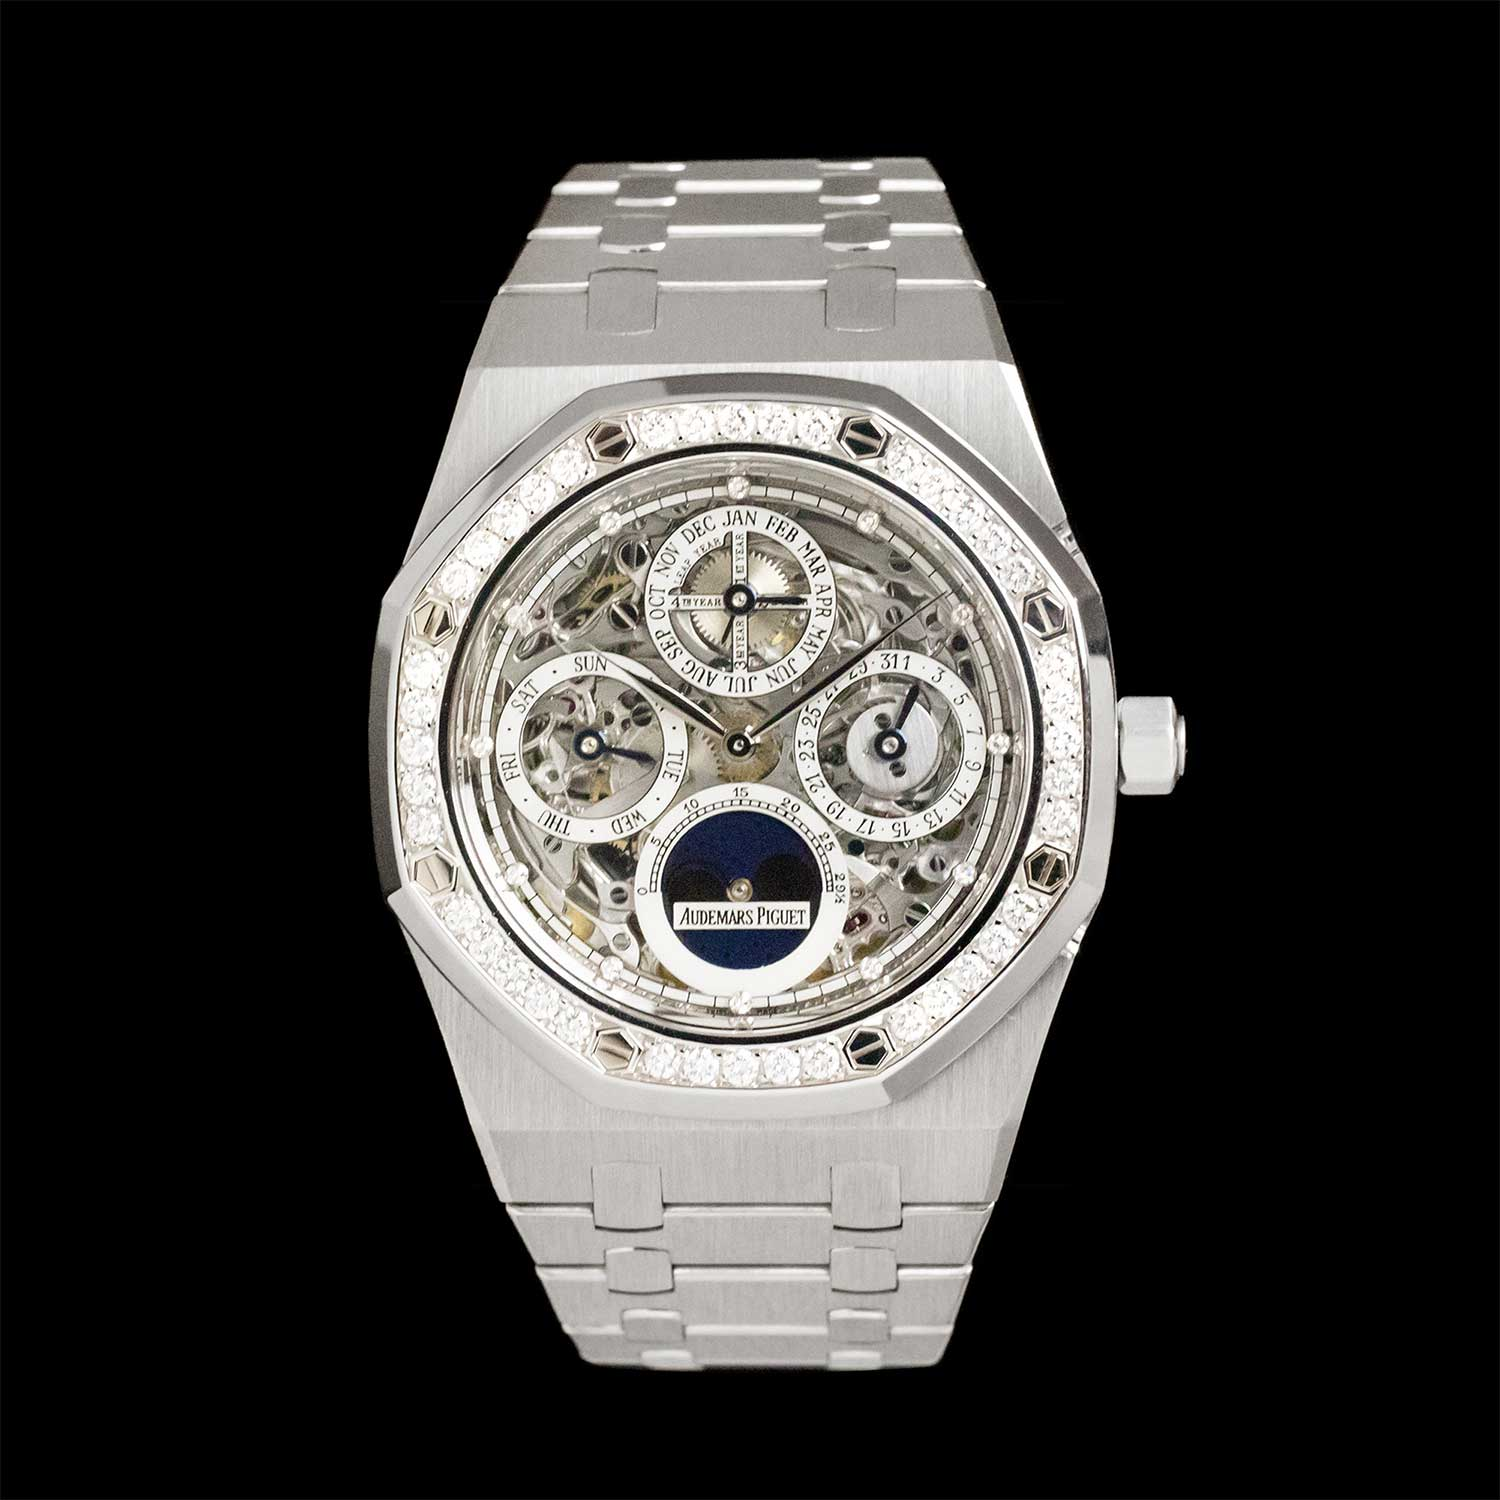 The Royal Oak Perpetual Calendar ref. Ref 25930PT with a skeleton dial (Image: amsterdamvintagewatches.com)